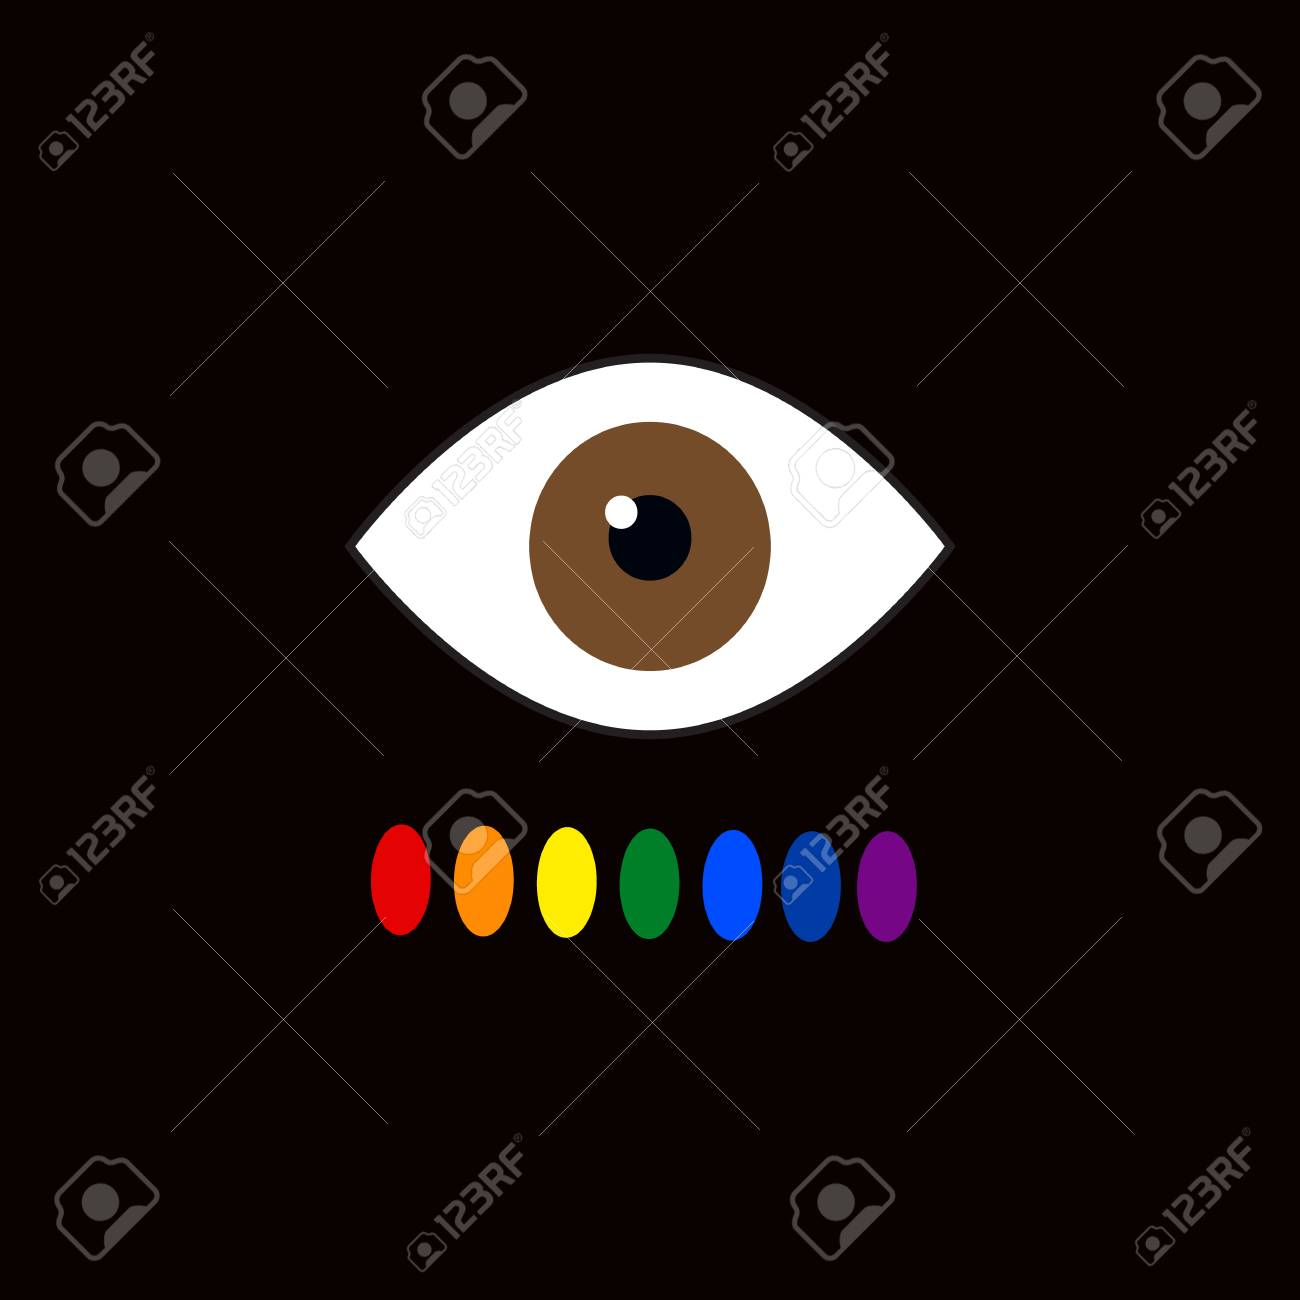 Color Blindness Eye Color Perception Seven Colors Of The Rainbow 1300x1300